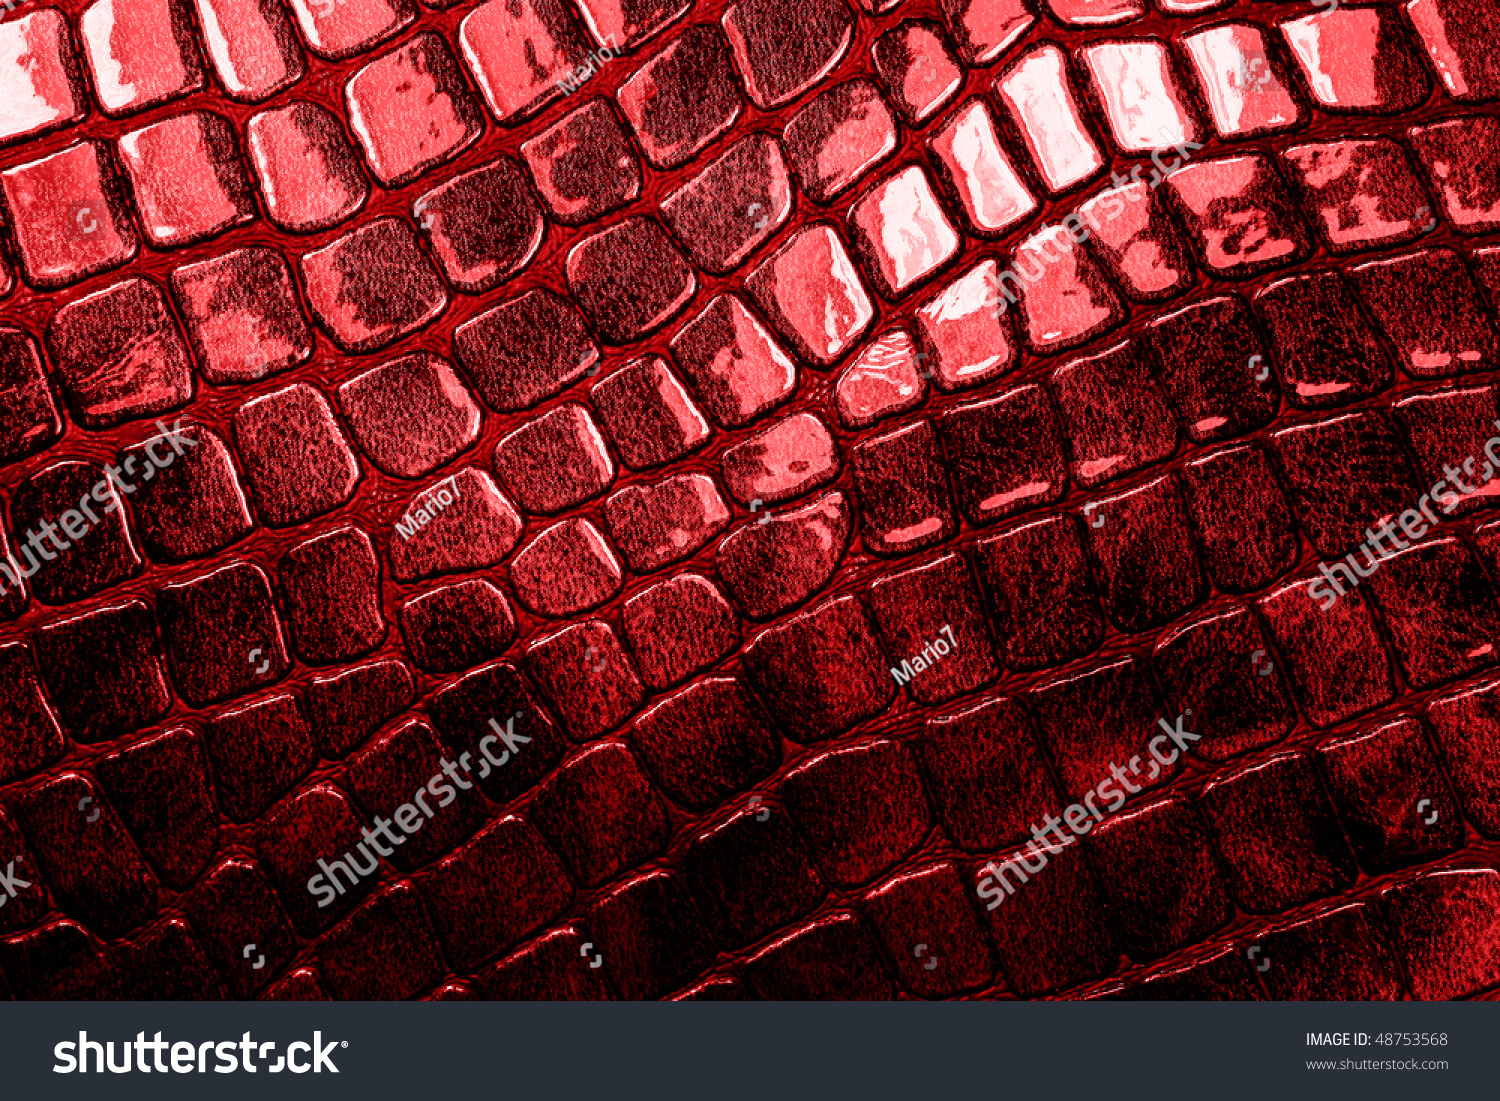 Red Glossy Texture Stock Photo 48753568 : Shutterstock